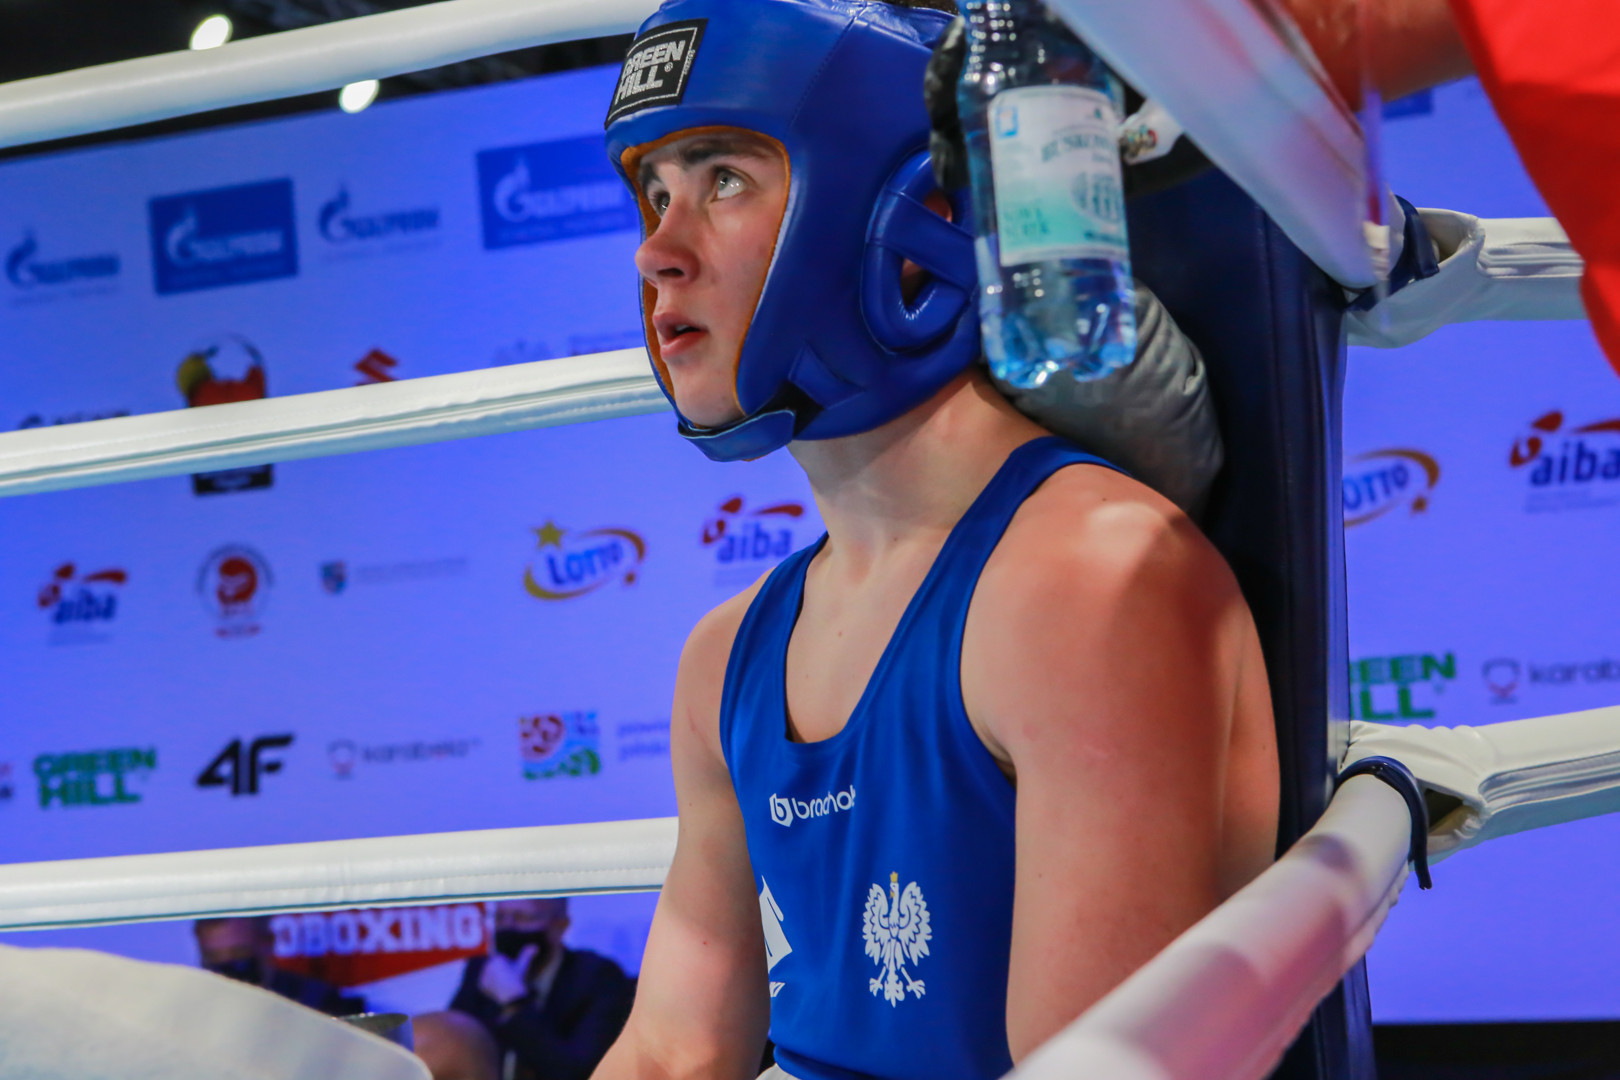 Fighters will compete in 20 weight categories at the Championships ©AIBA